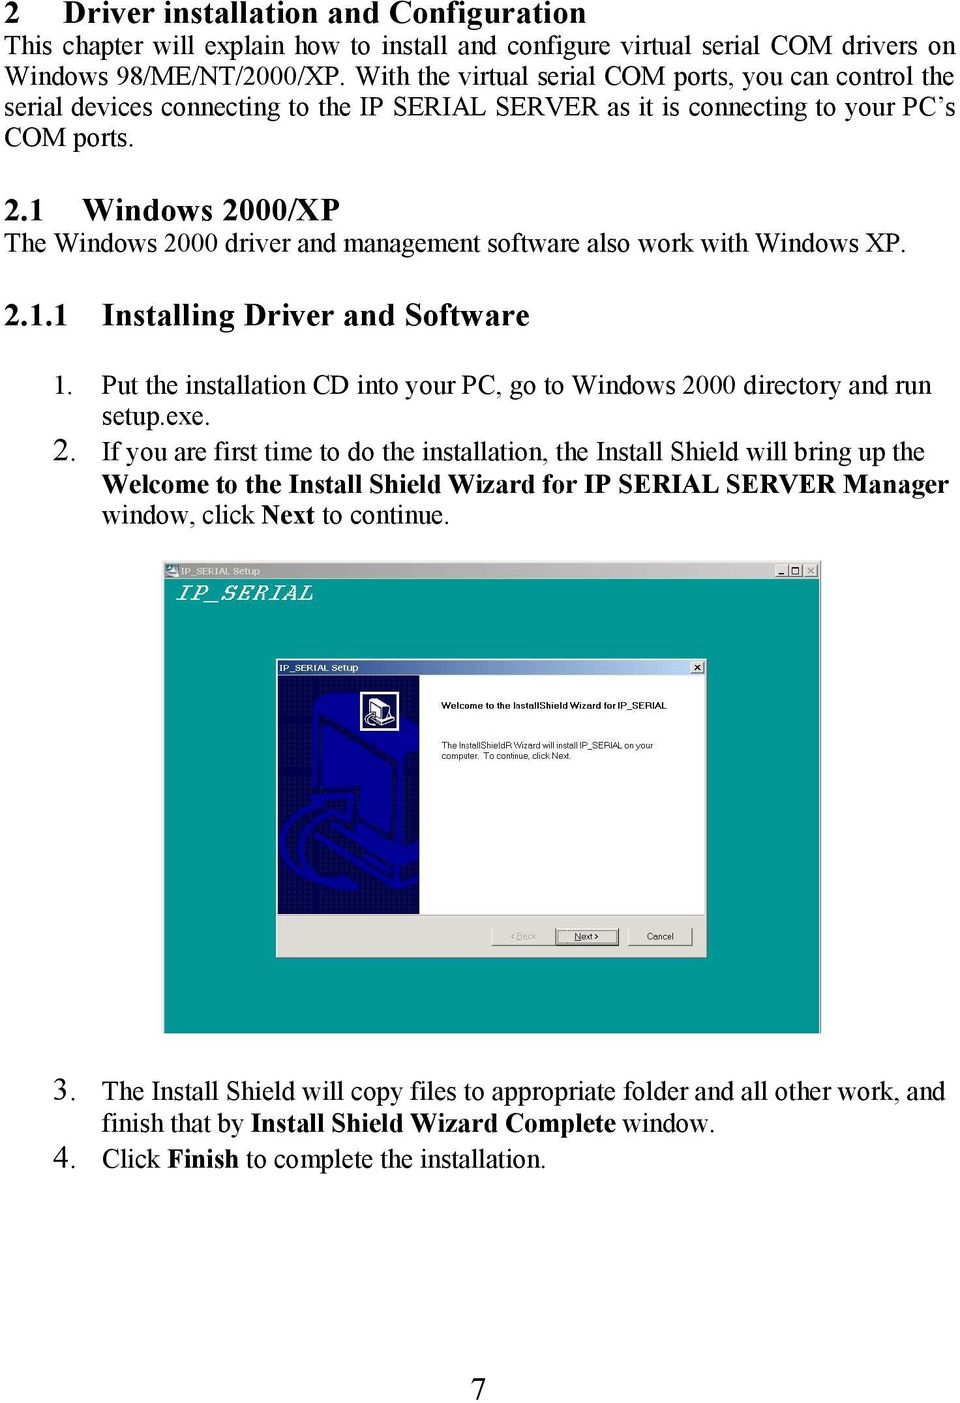 1 Windows 2000/XP The Windows 2000 driver and management software also work with Windows XP. 2.1.1 1. 2. Installing Driver and Software Put the installation CD into your PC, go to Windows 2000 directory and run setup.